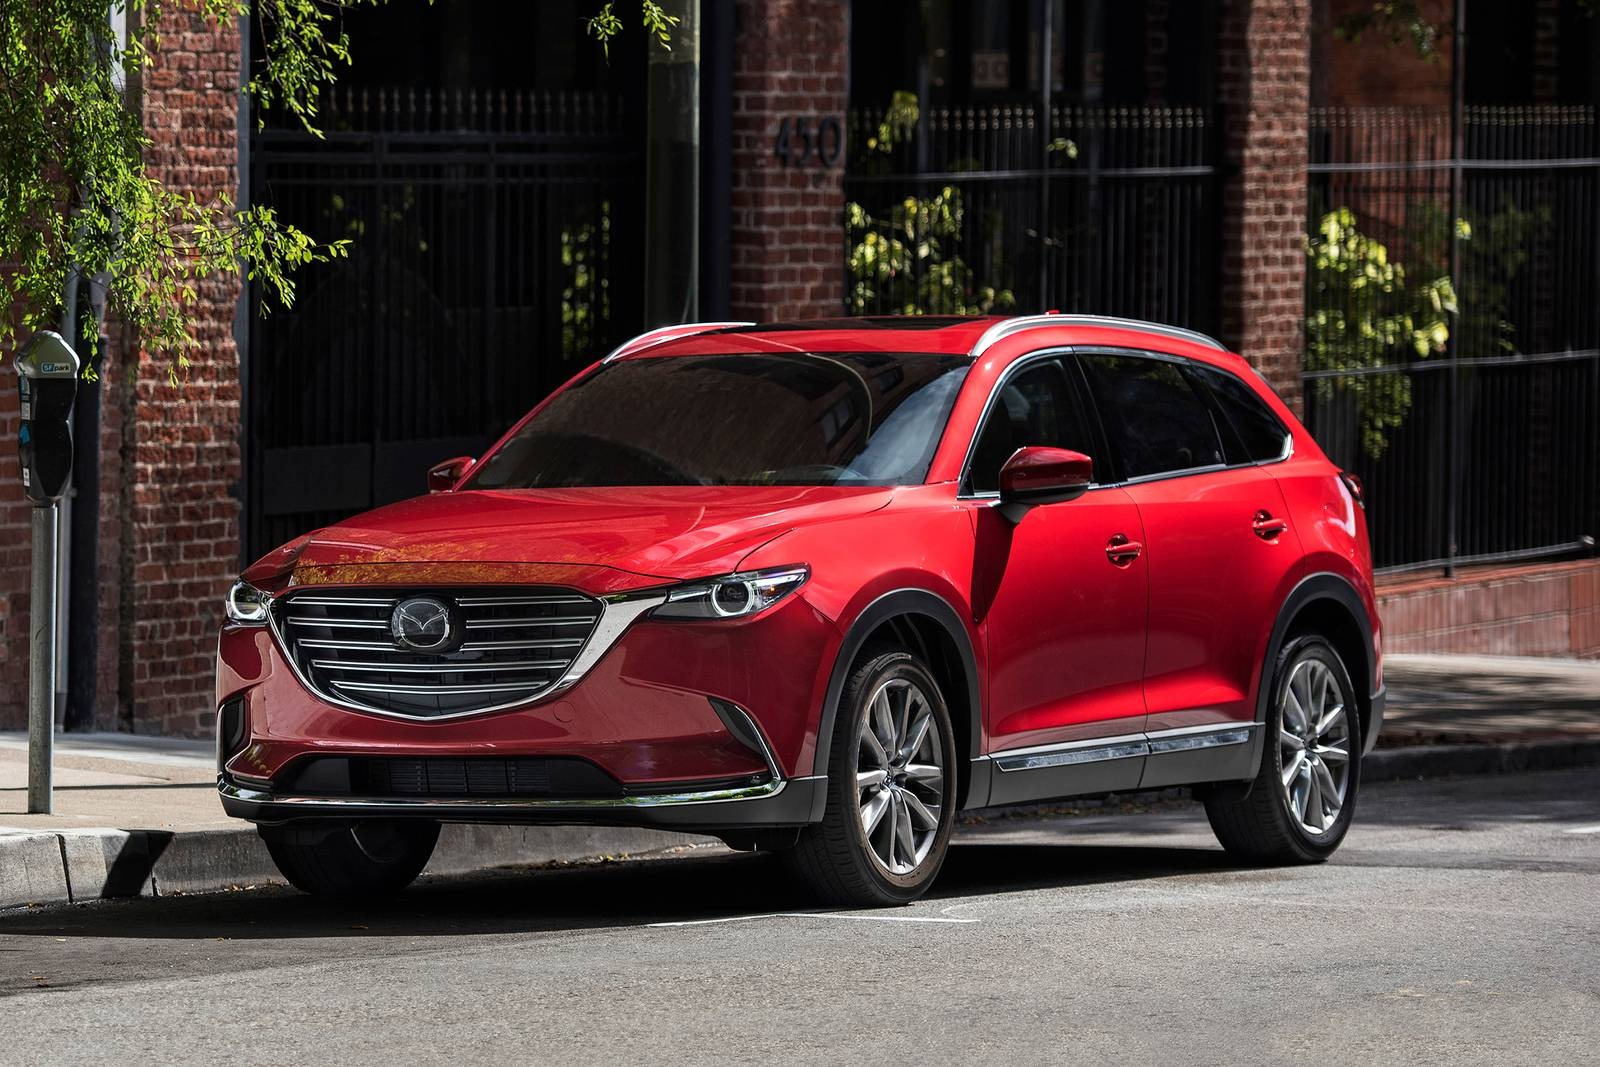 84 All New 2019 Mazda Cx 9 History